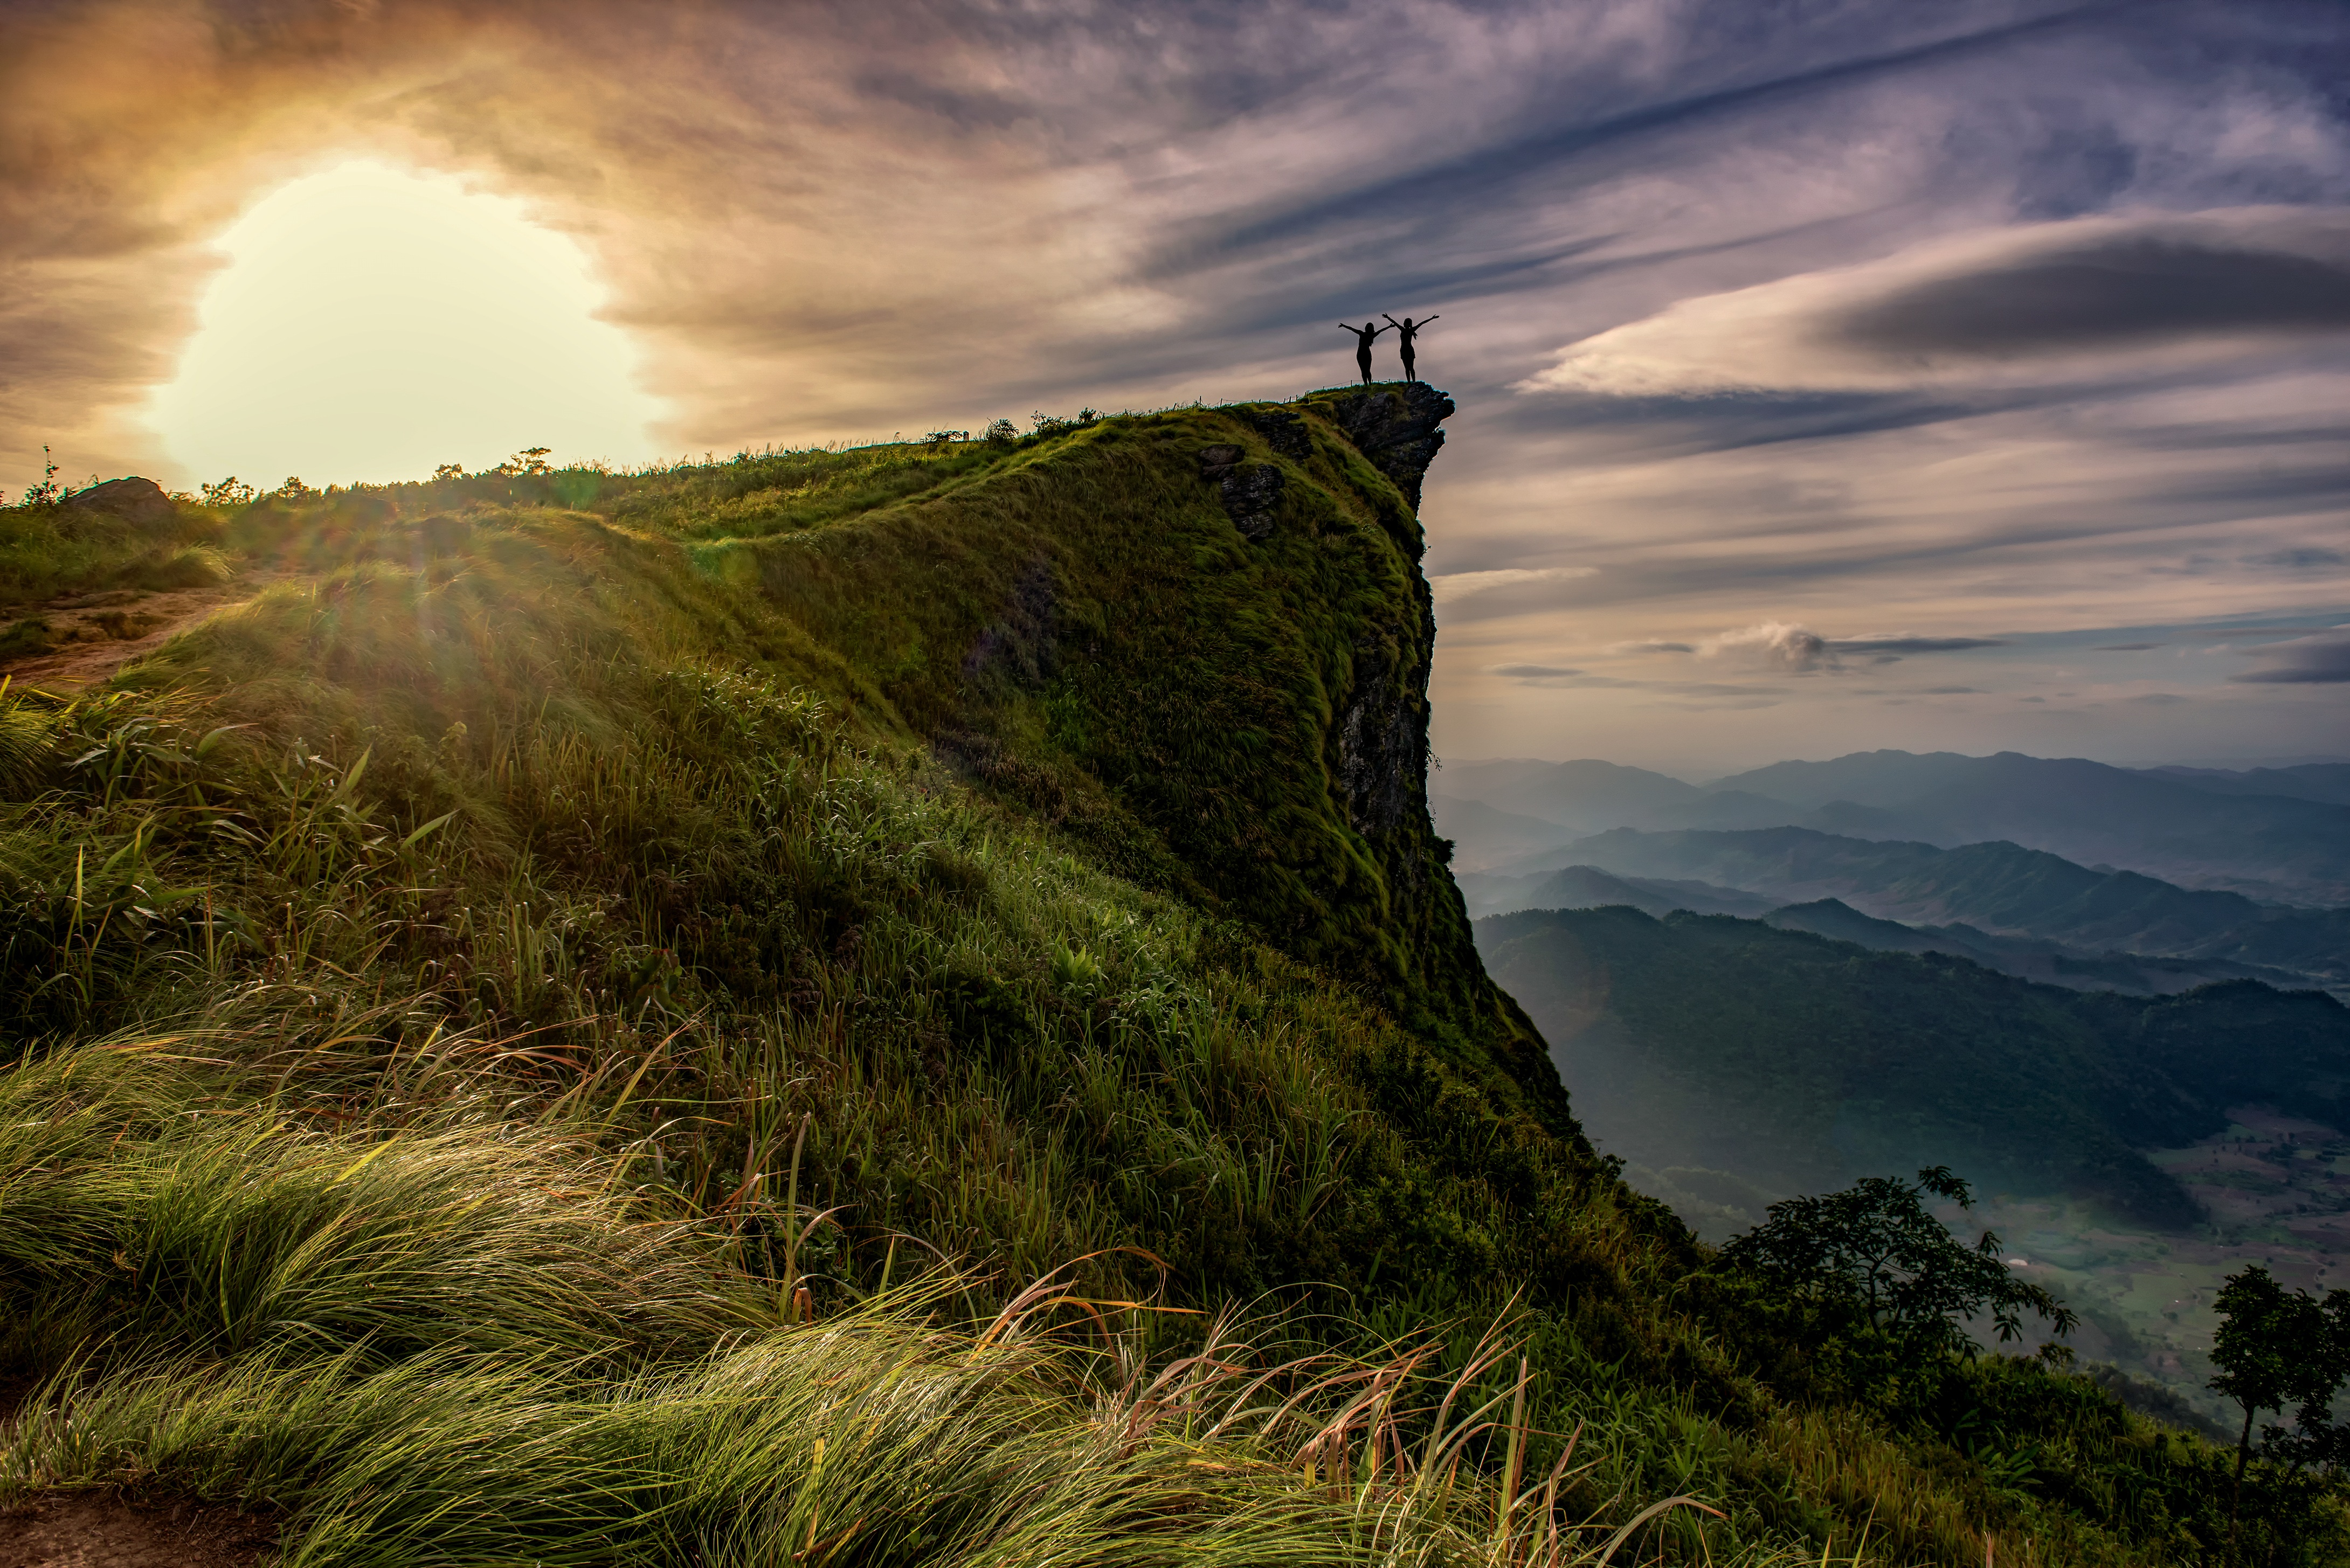 146451 download wallpaper Nature, Mountain, Vertex, Top, People, Victory, Freedom, Conquest screensavers and pictures for free